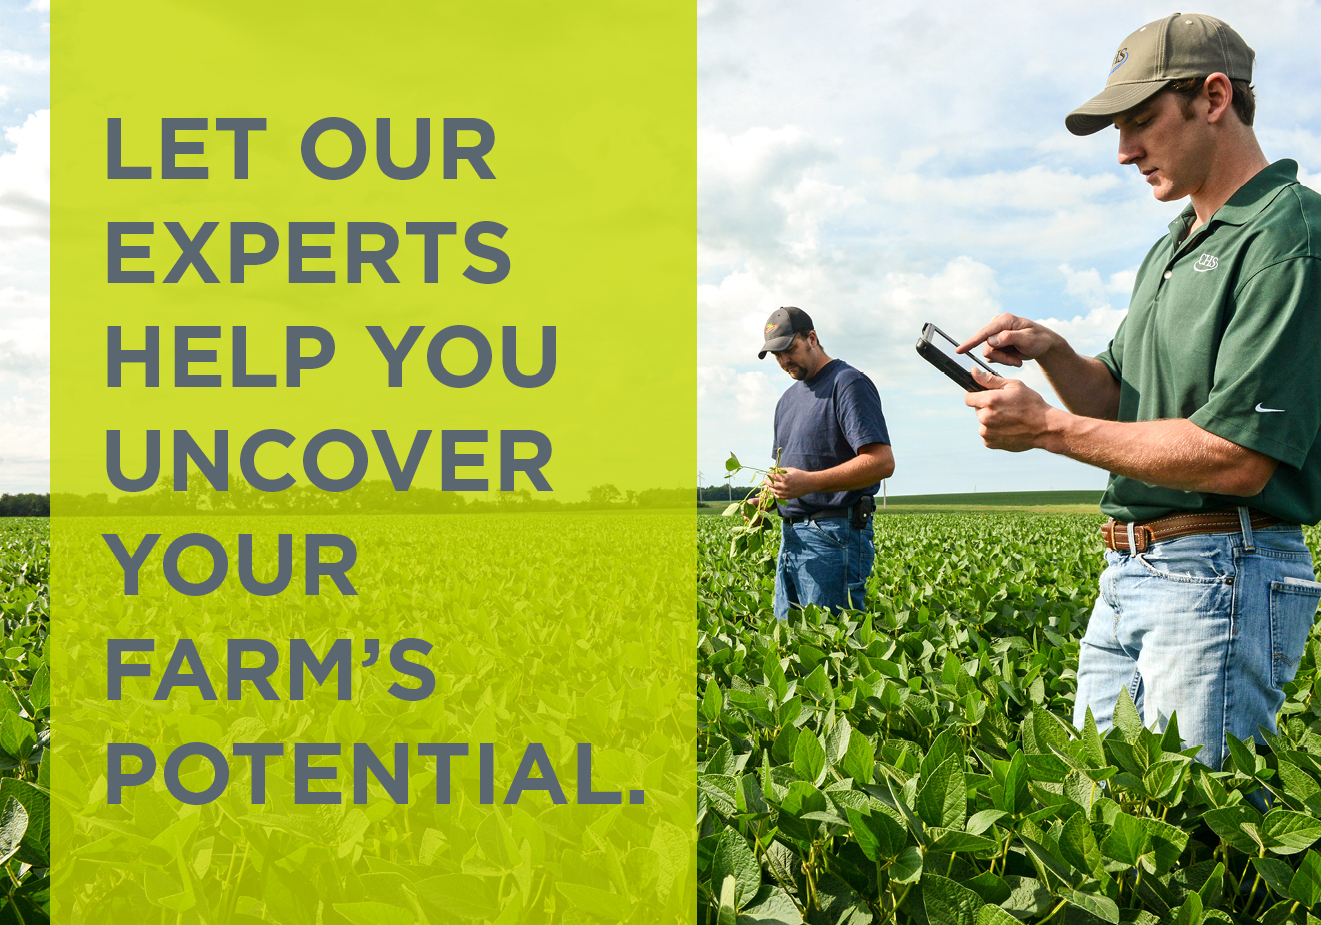 Let our experts help you uncover your farm's potential